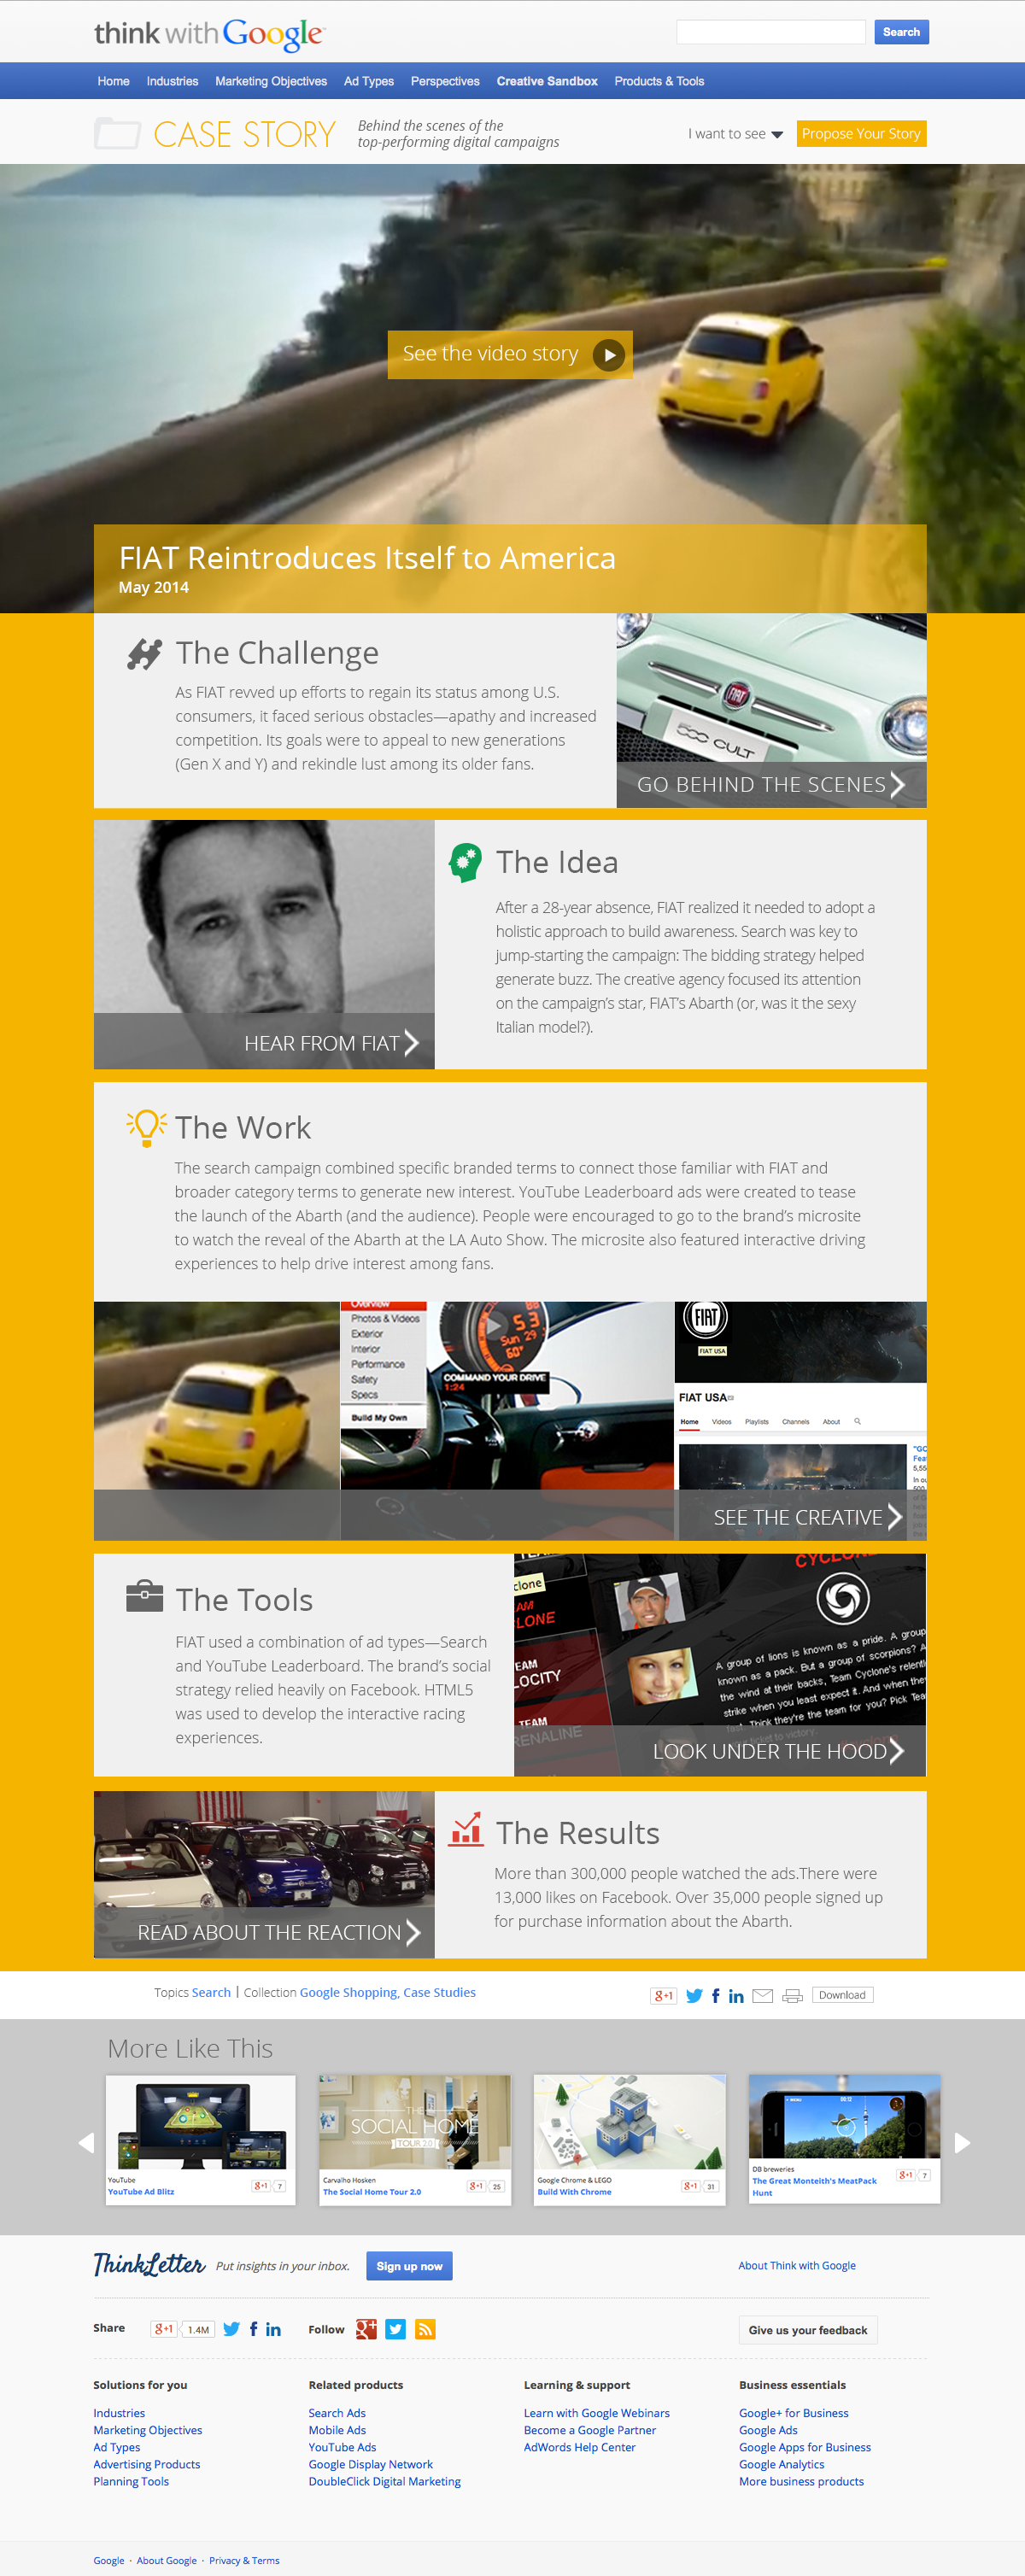 TwG-Case-Studies-Template-Collapsed-State-061314-copy_0004_Fiat-Case-Story-Closed